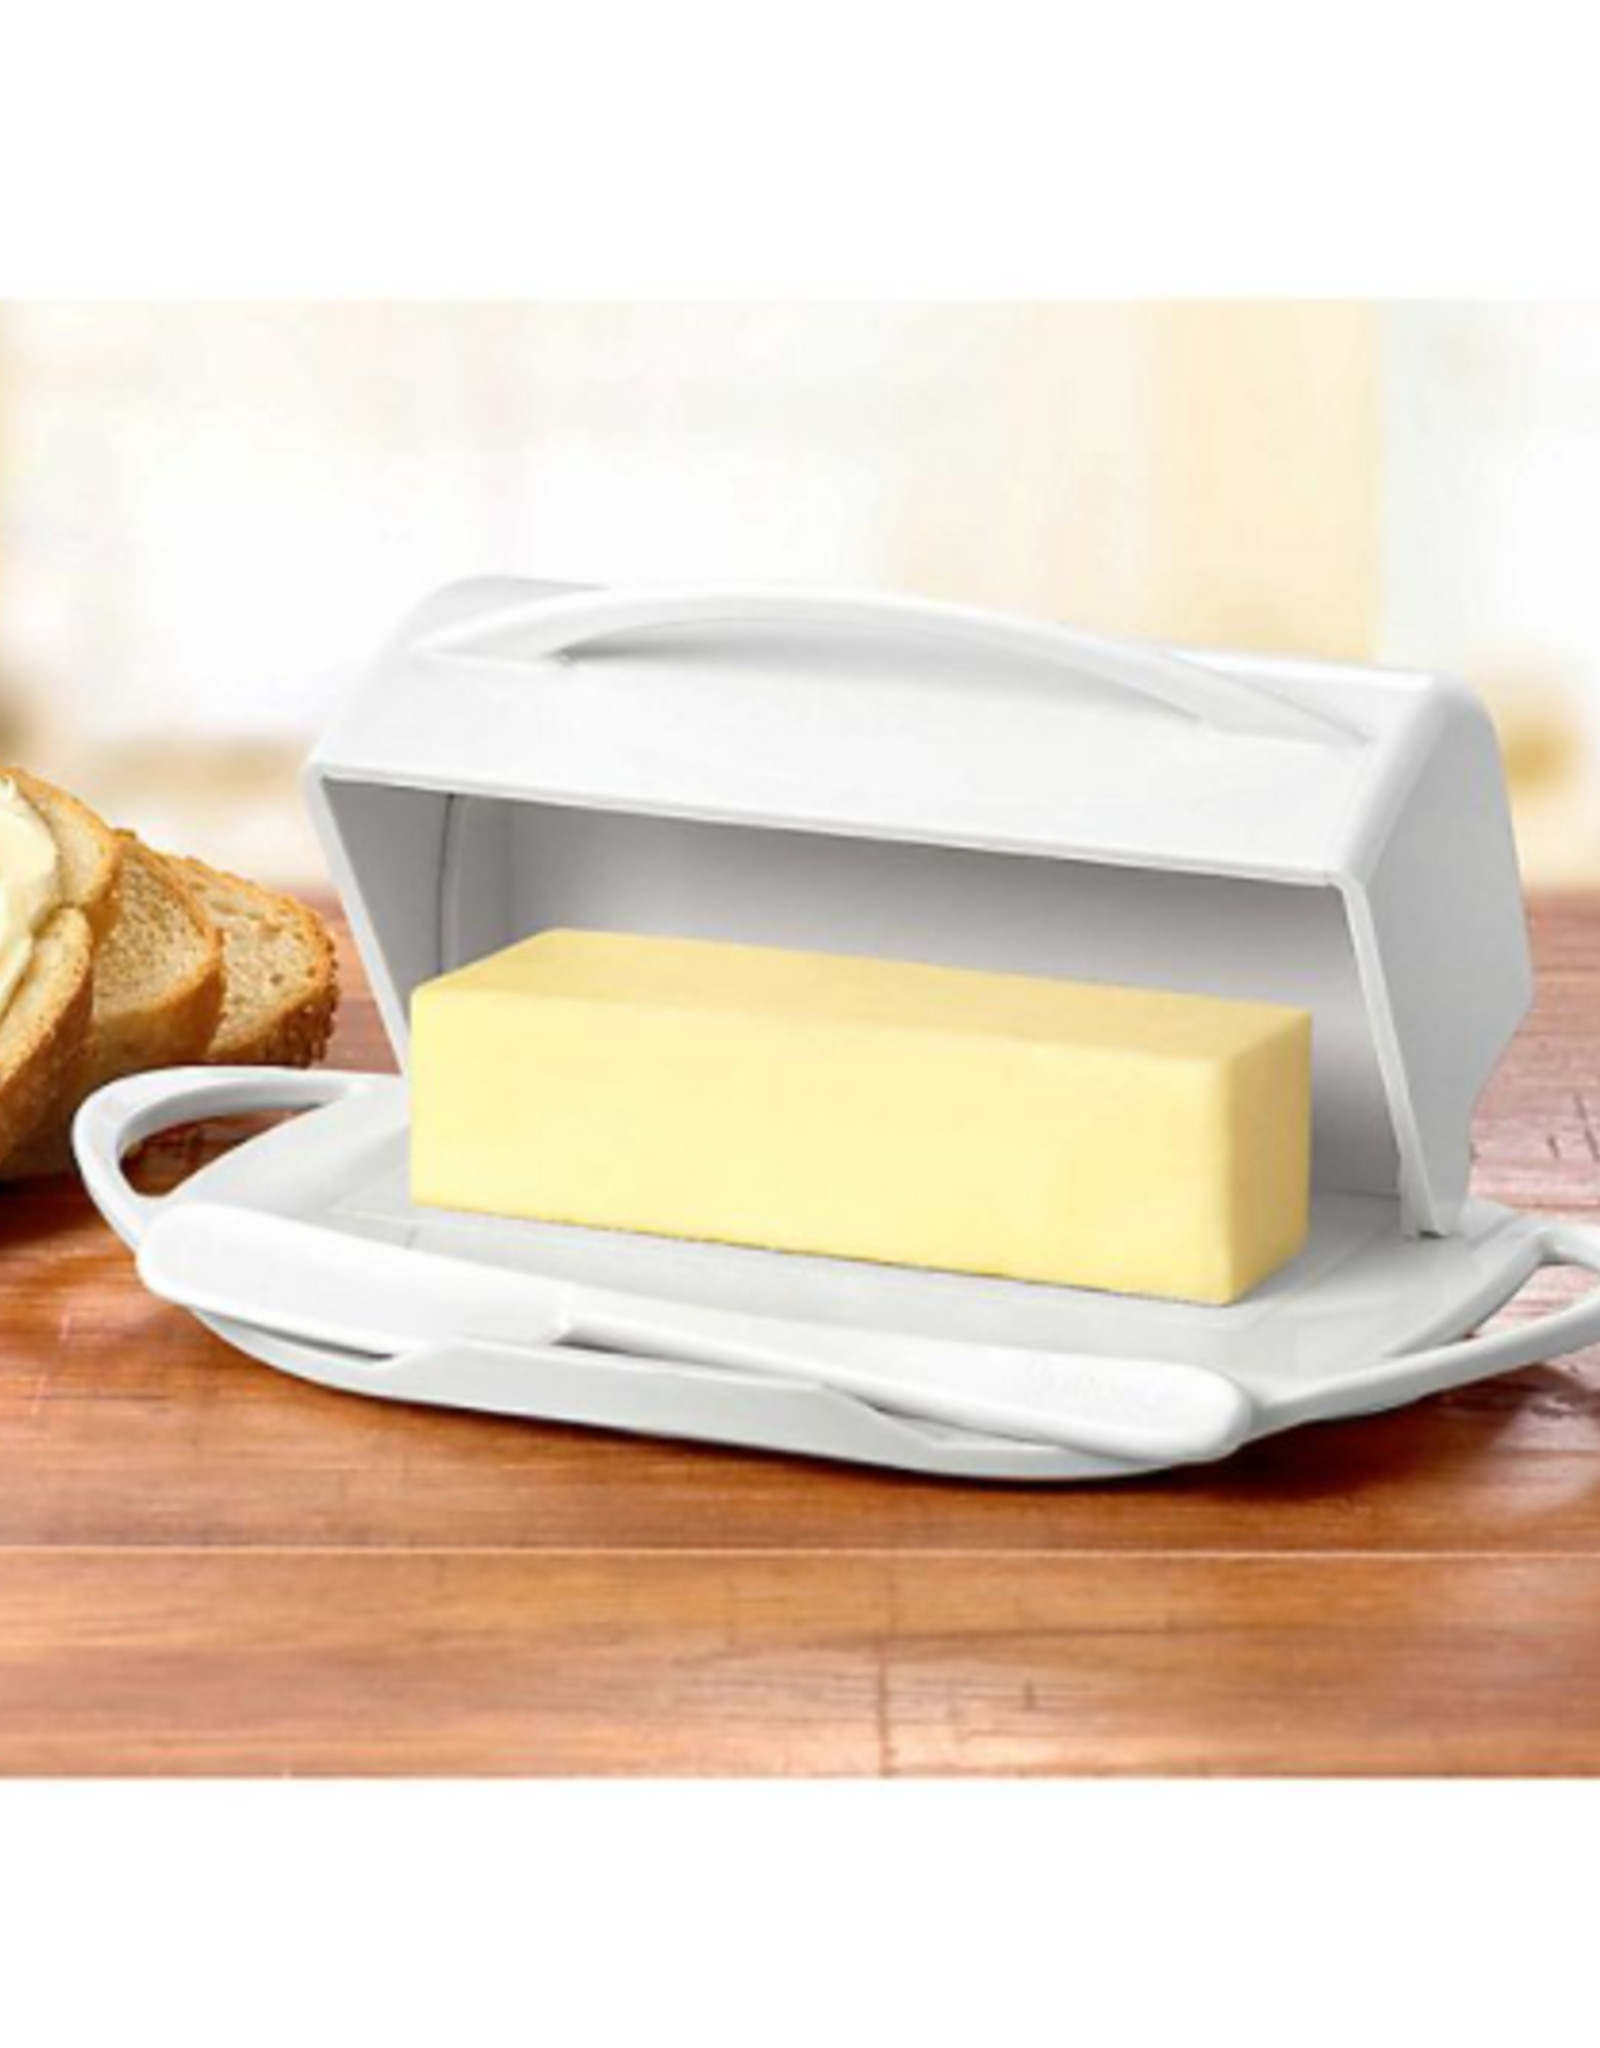 Kitchen Concepts Unlimited Butterie Butter Dish - White